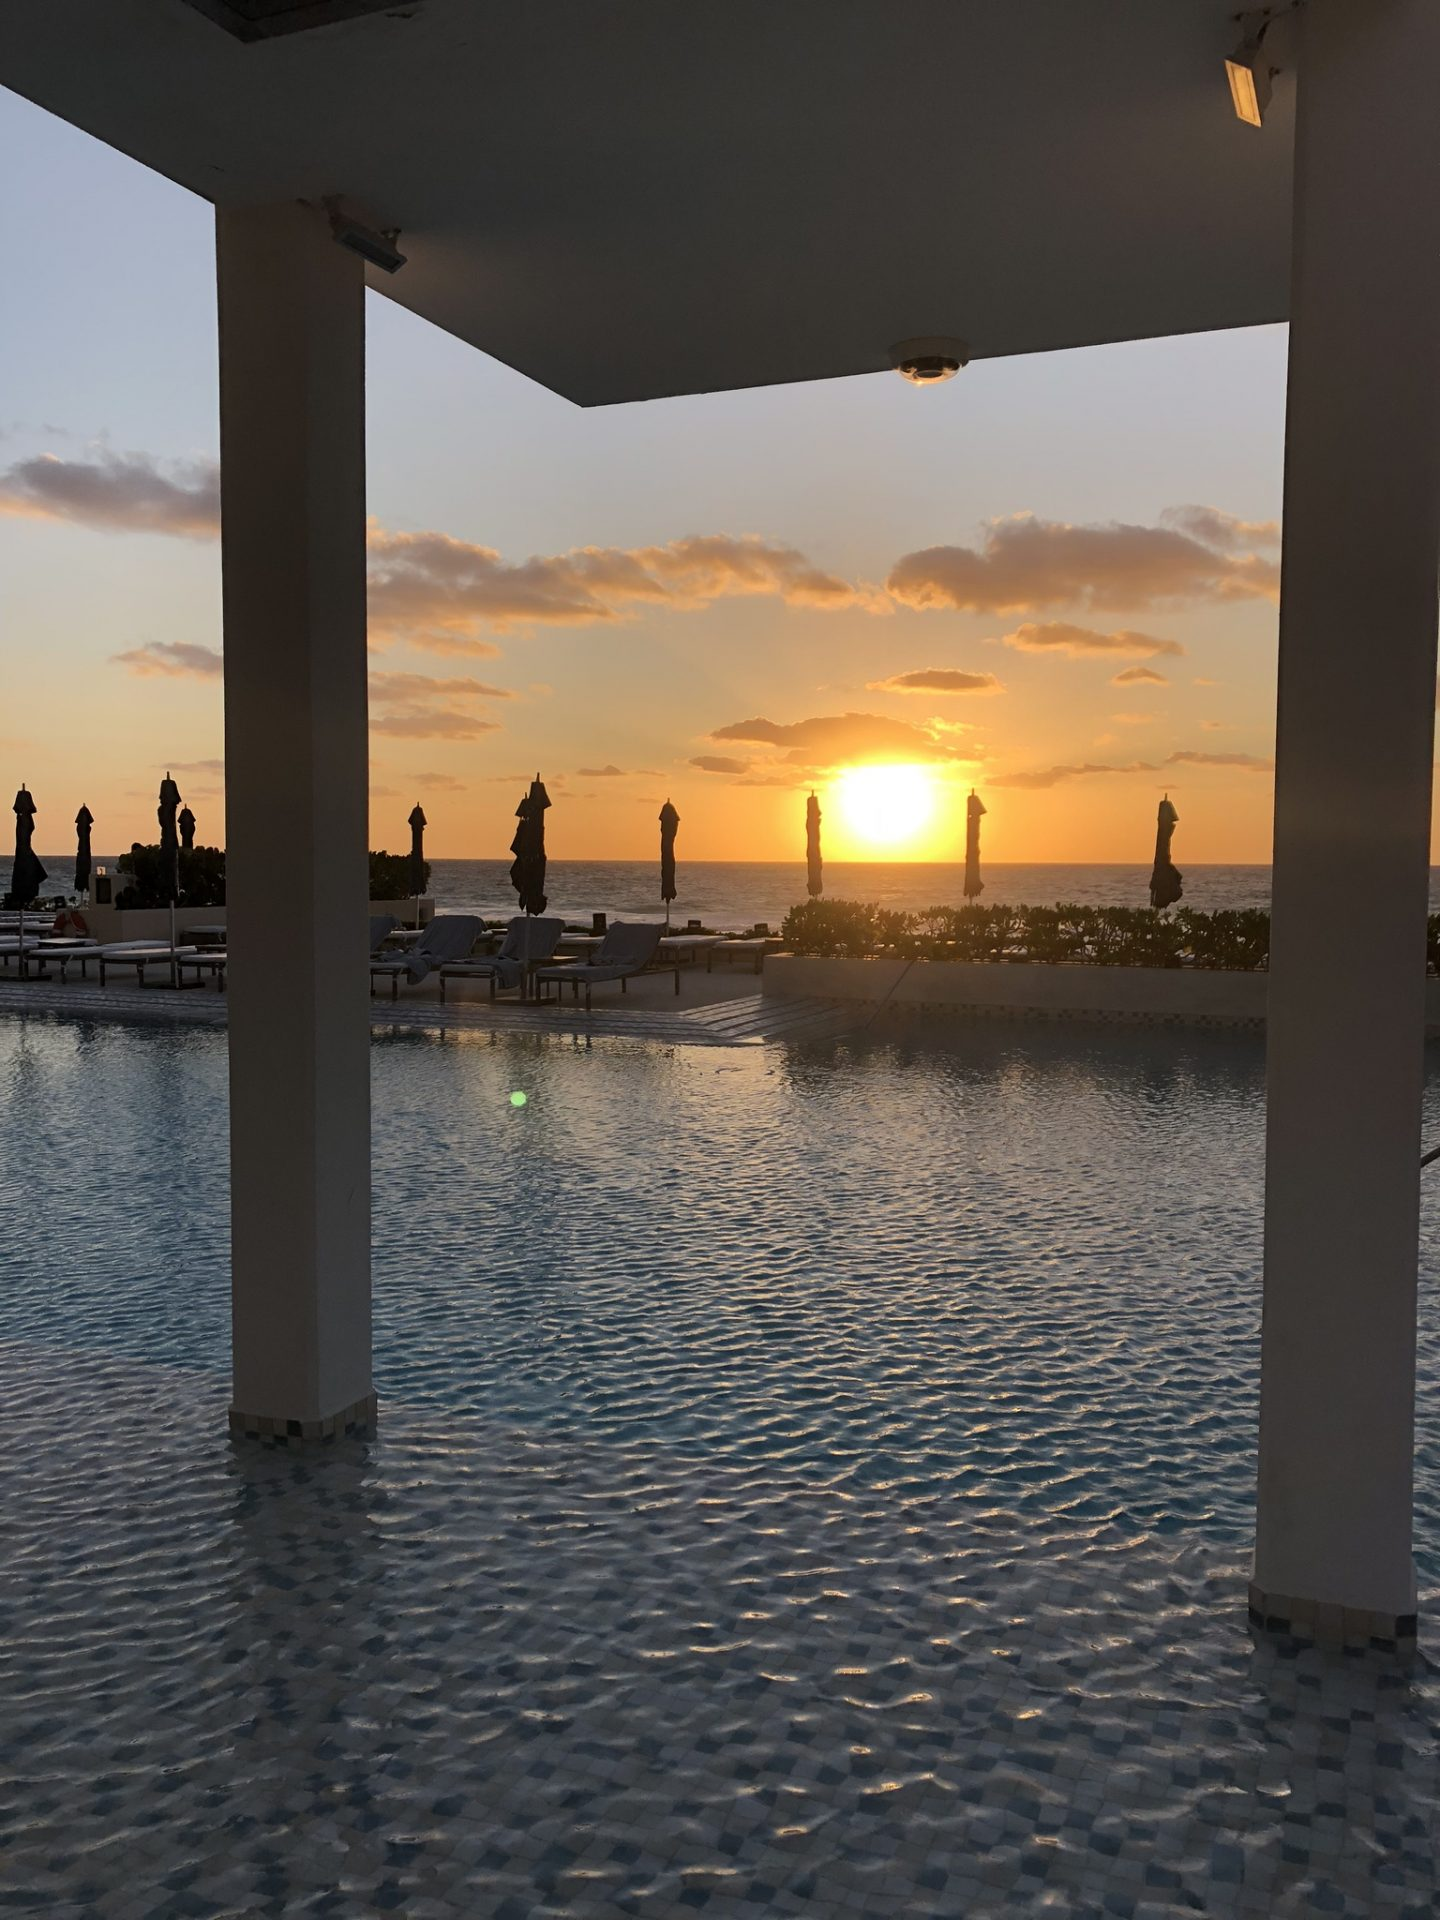 Sunrise at Secrets The Vine, Cancun